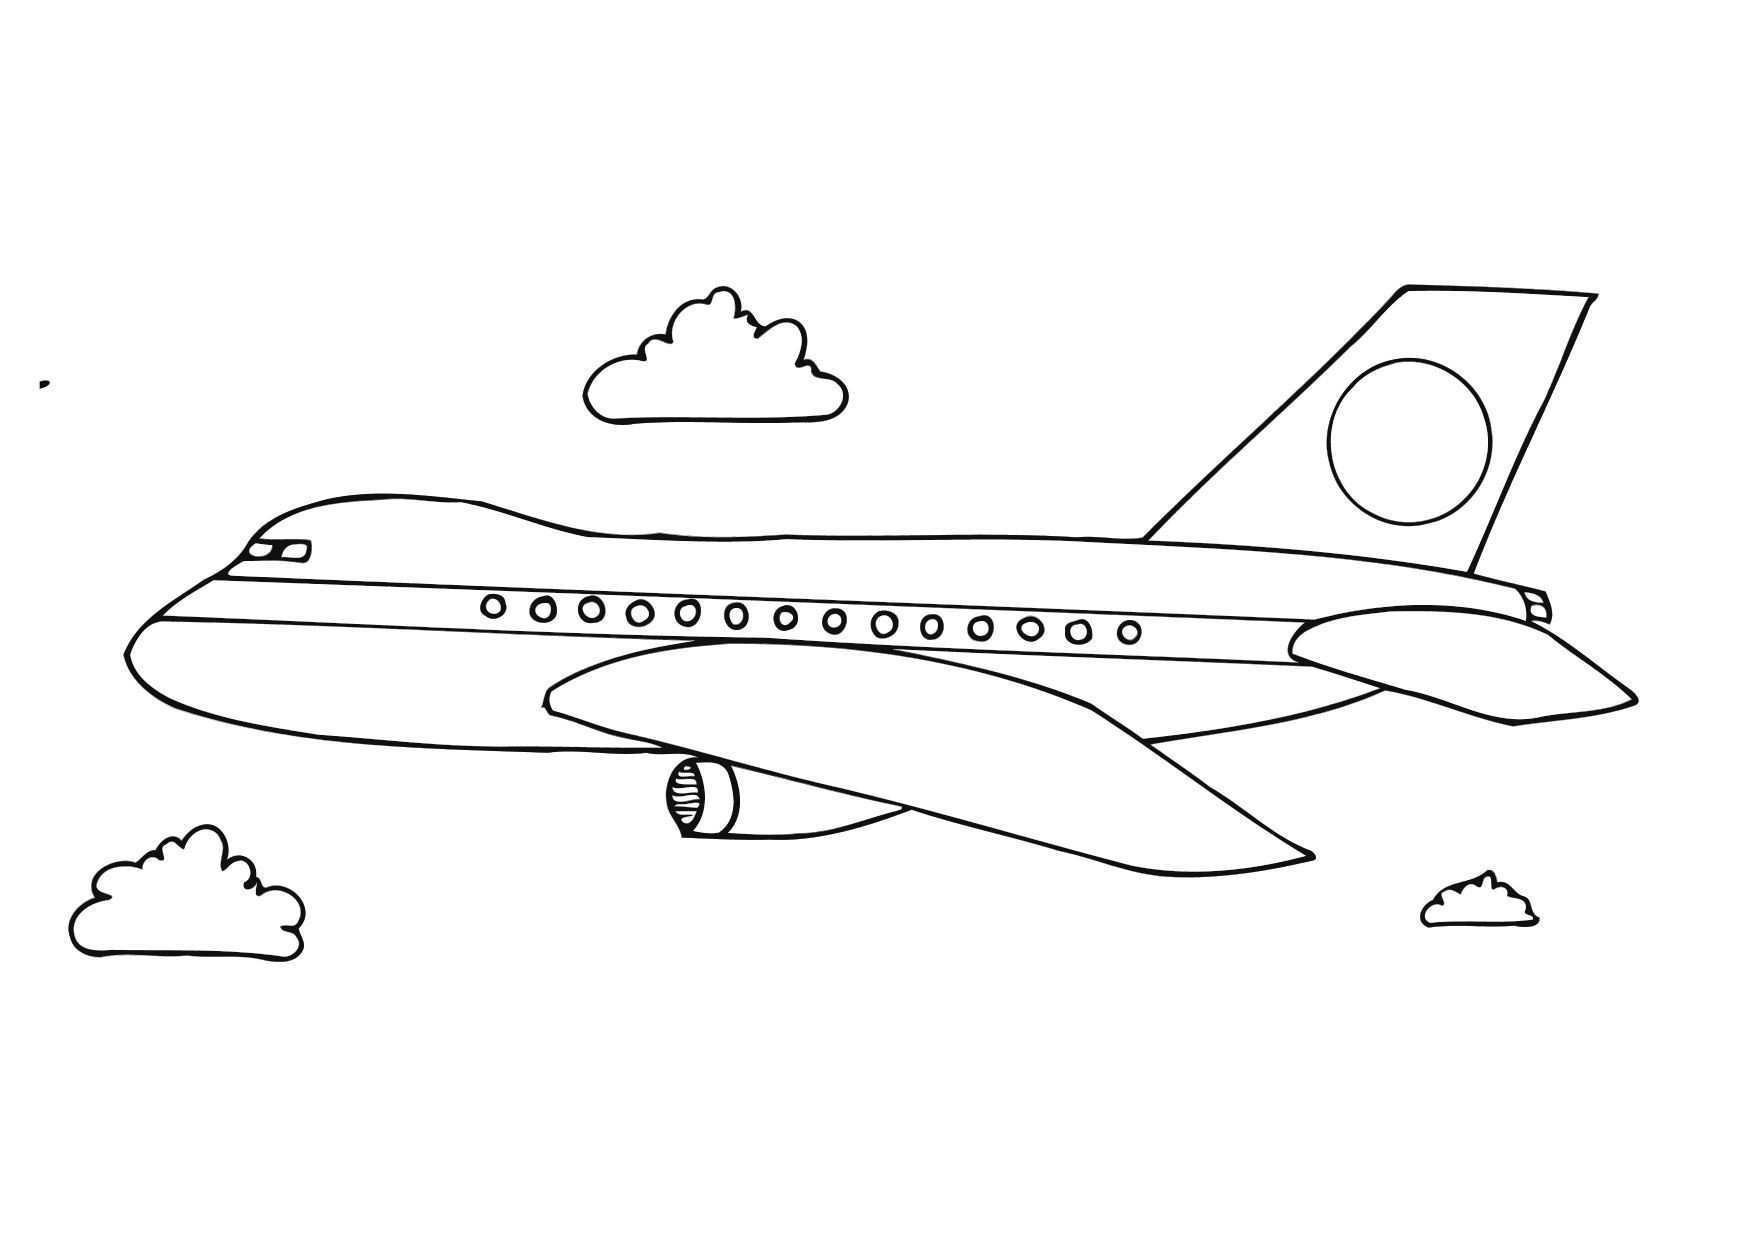 Airplane Coloring Pages Coloring Pages Of Aeroplane Beautiful Airplane Coloring Pages